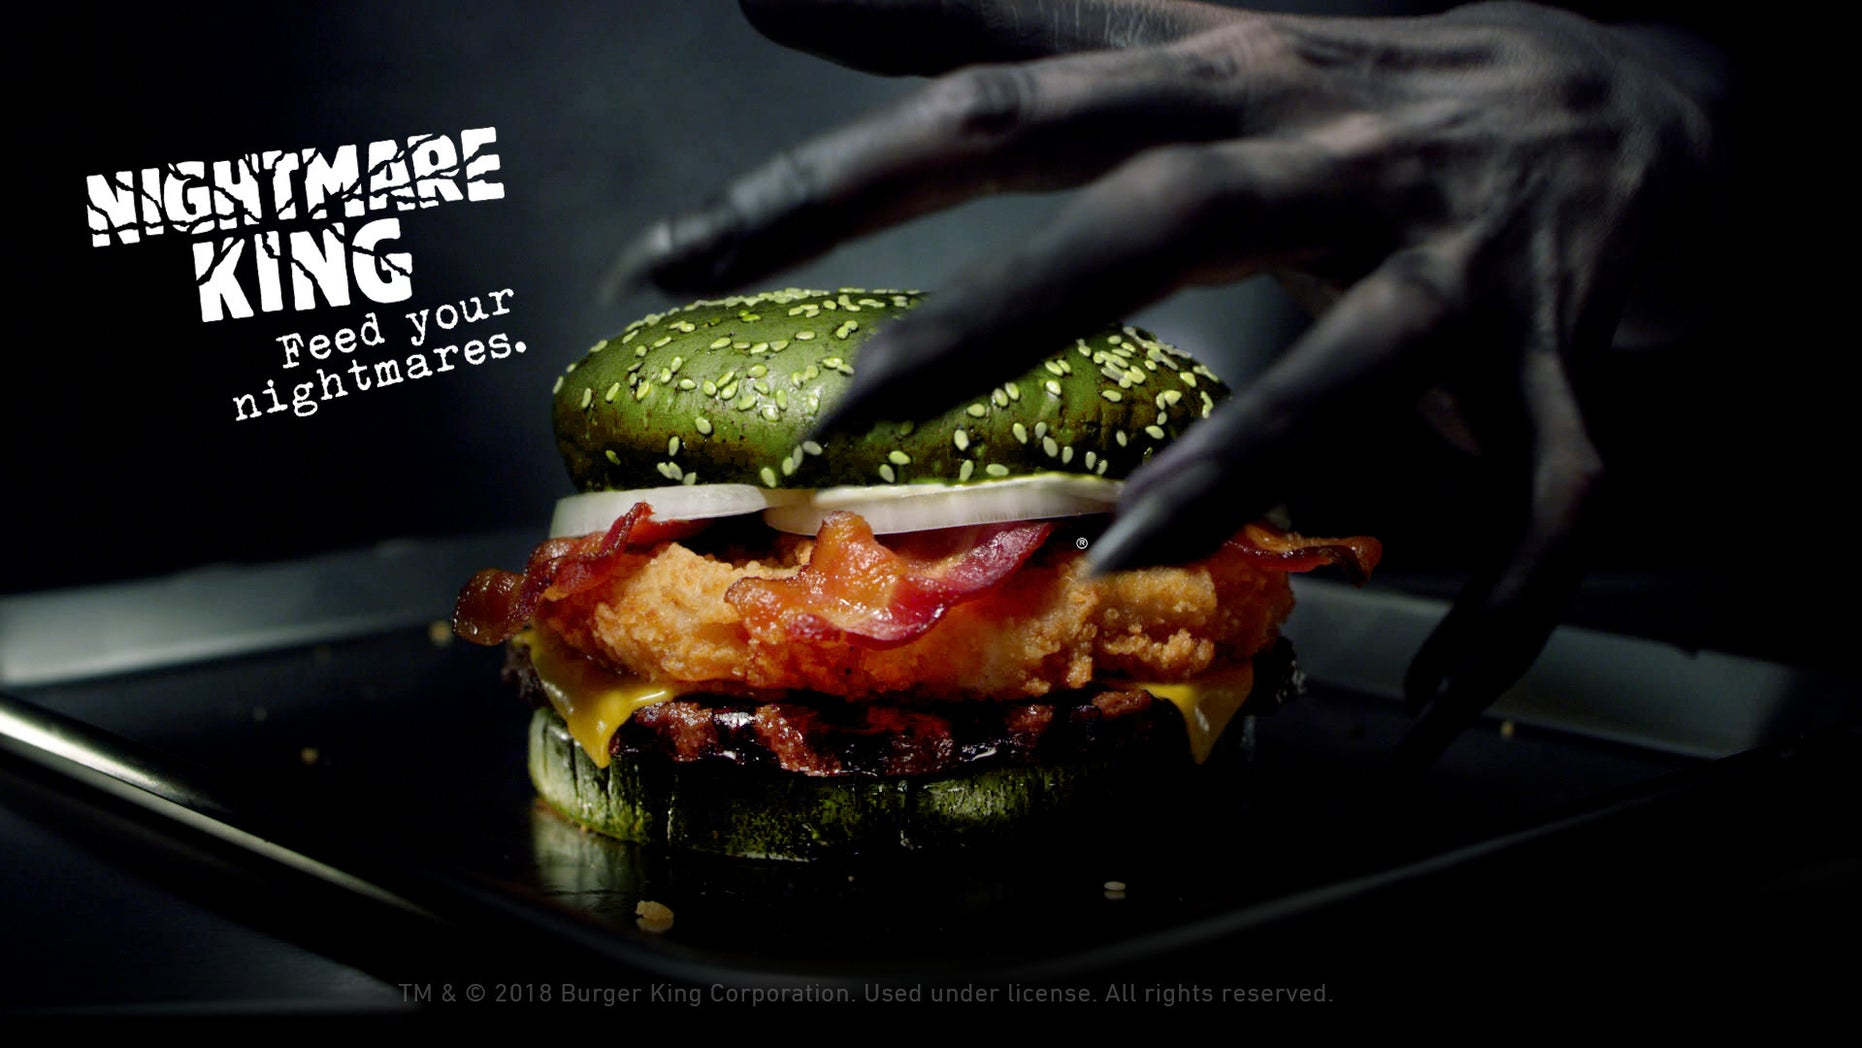 Burger King creates 'nightmare' green sandwich for Halloween